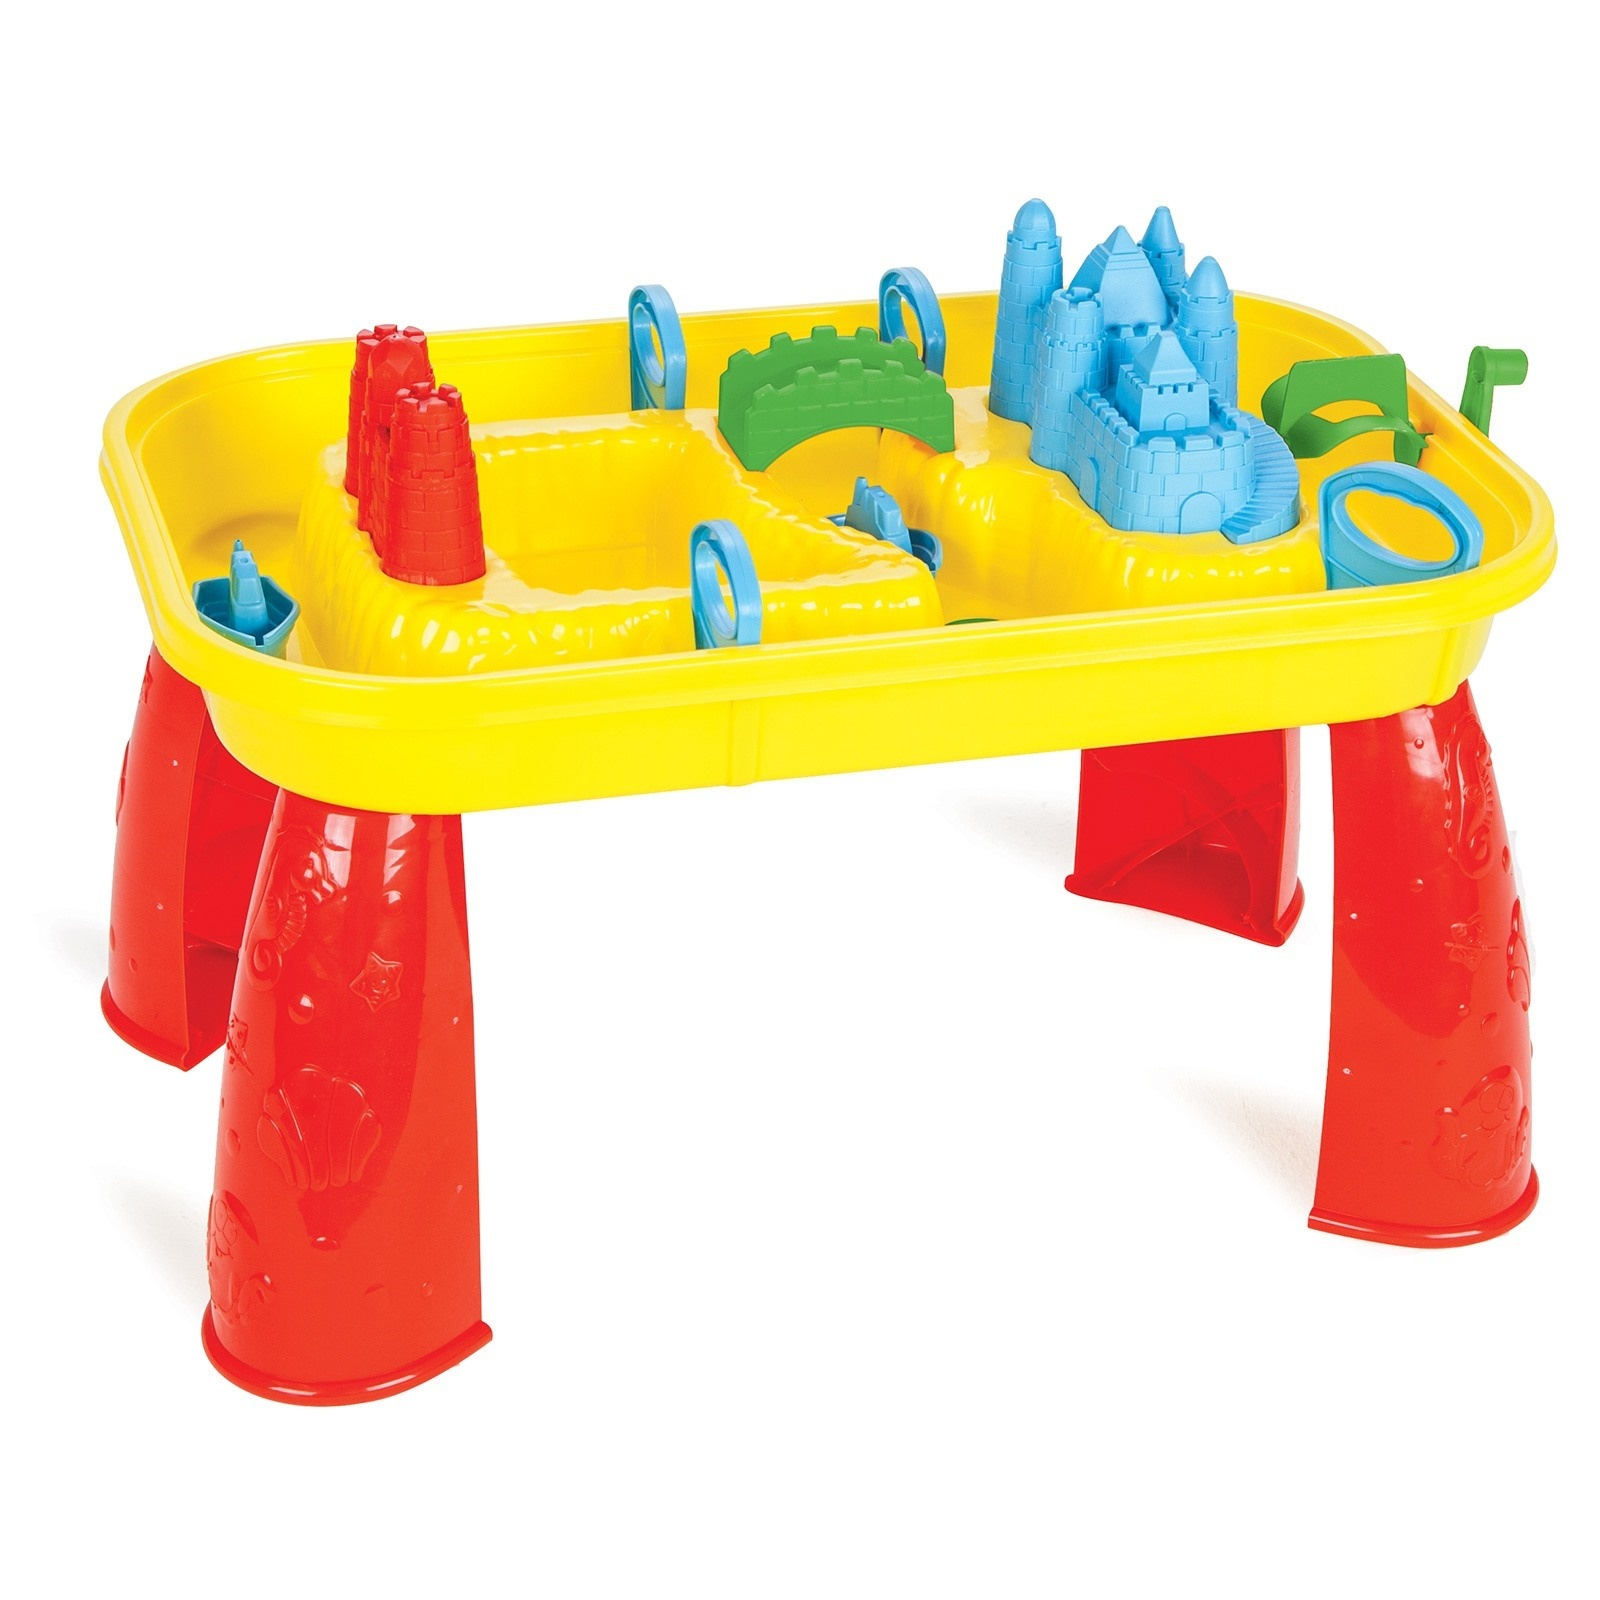 Ebebek Pilsan Sand And Water Table